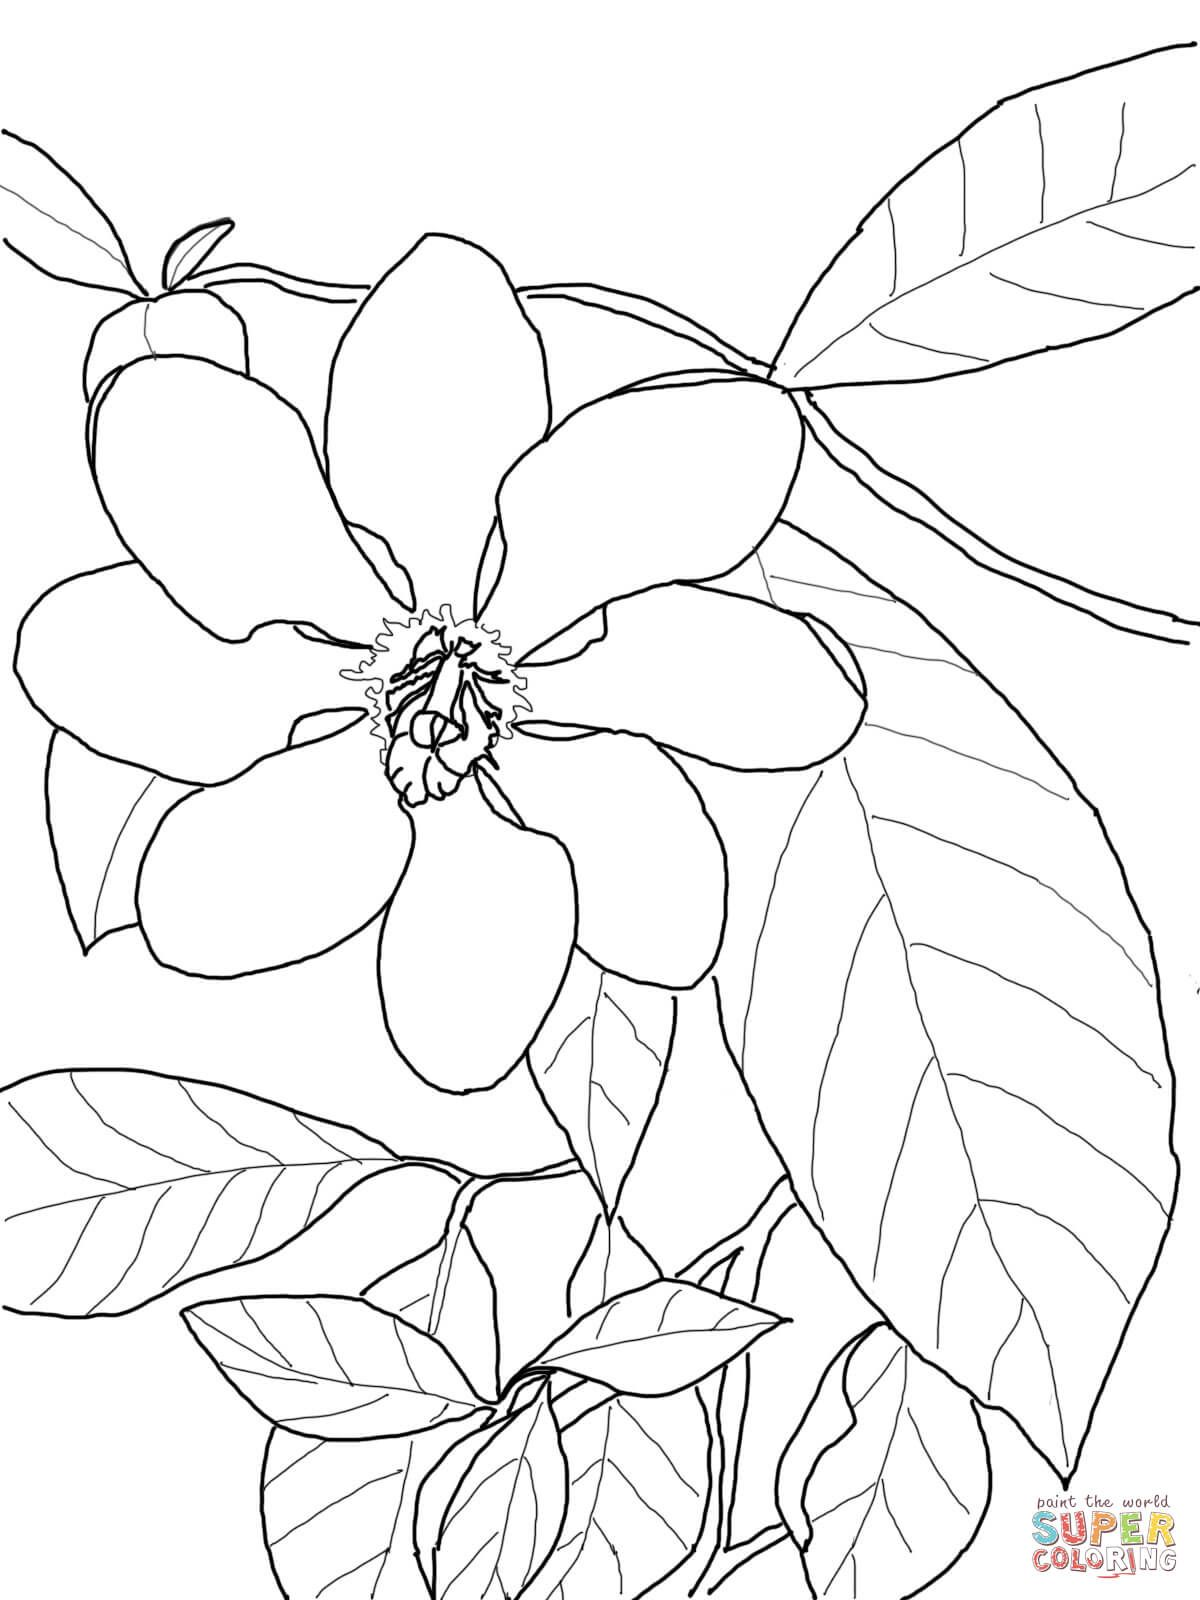 Gardenia Carinata Super Coloring Drawing Flowers